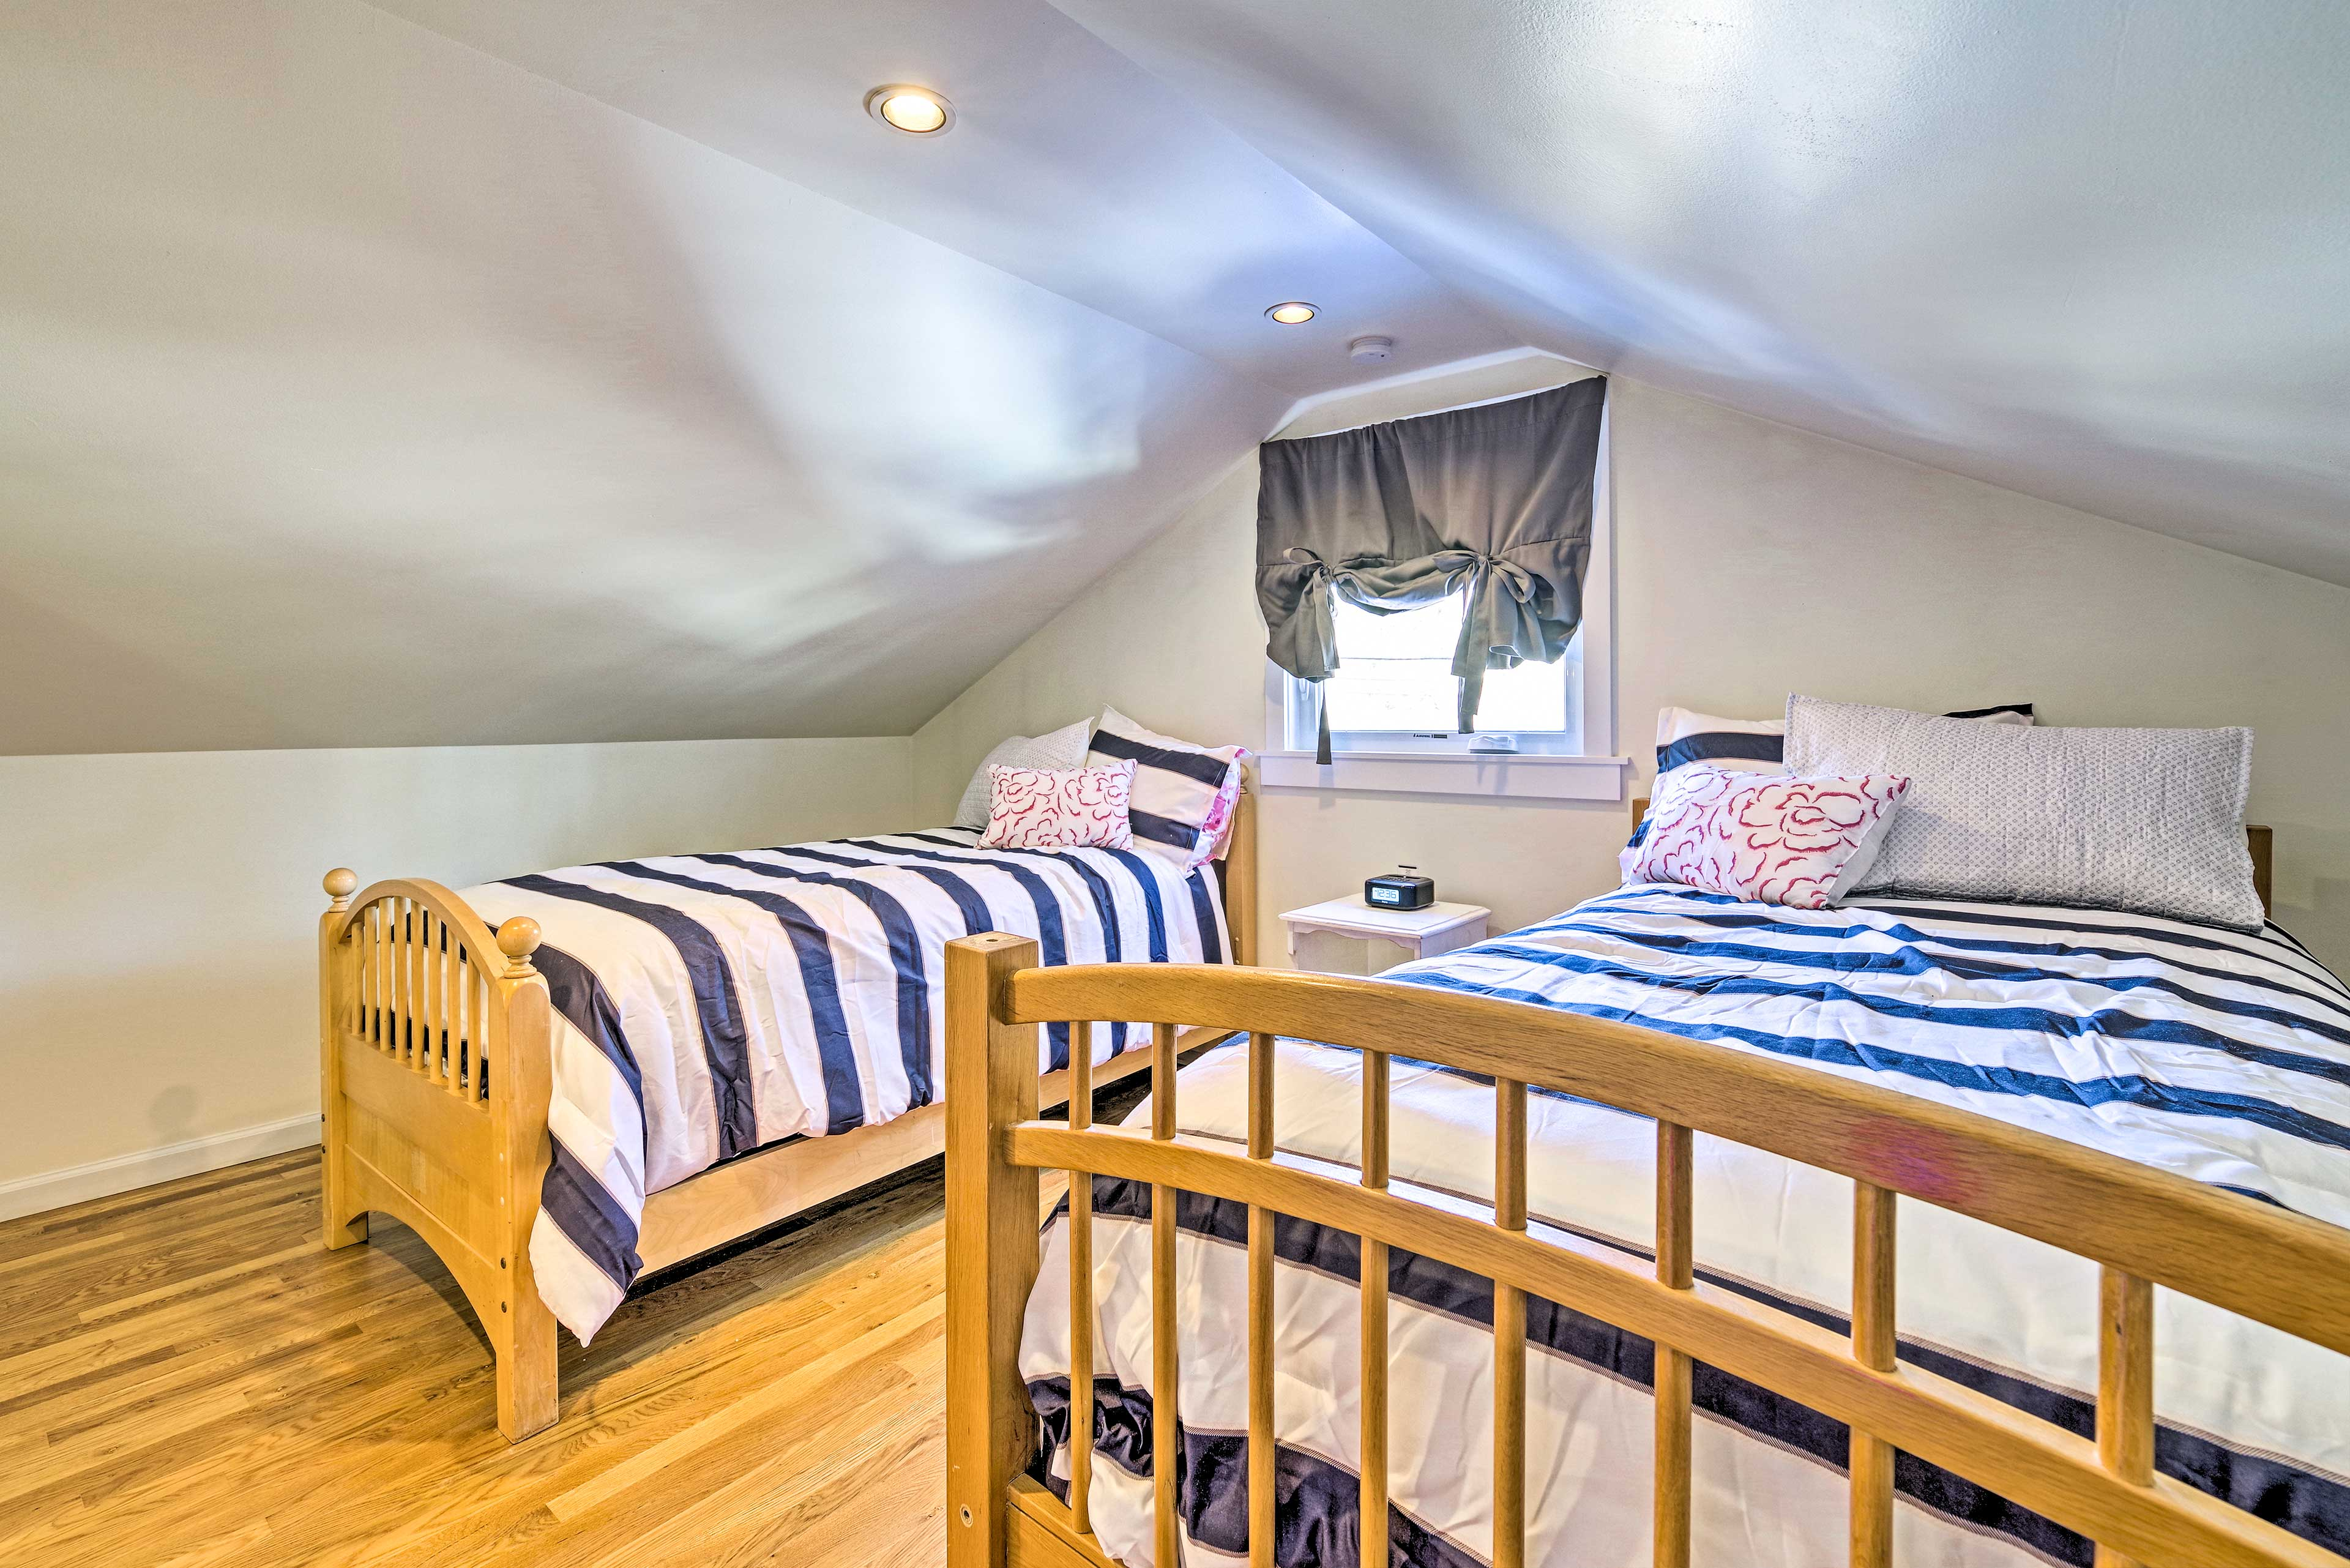 The fifth bedroom boasts 2 twin beds.